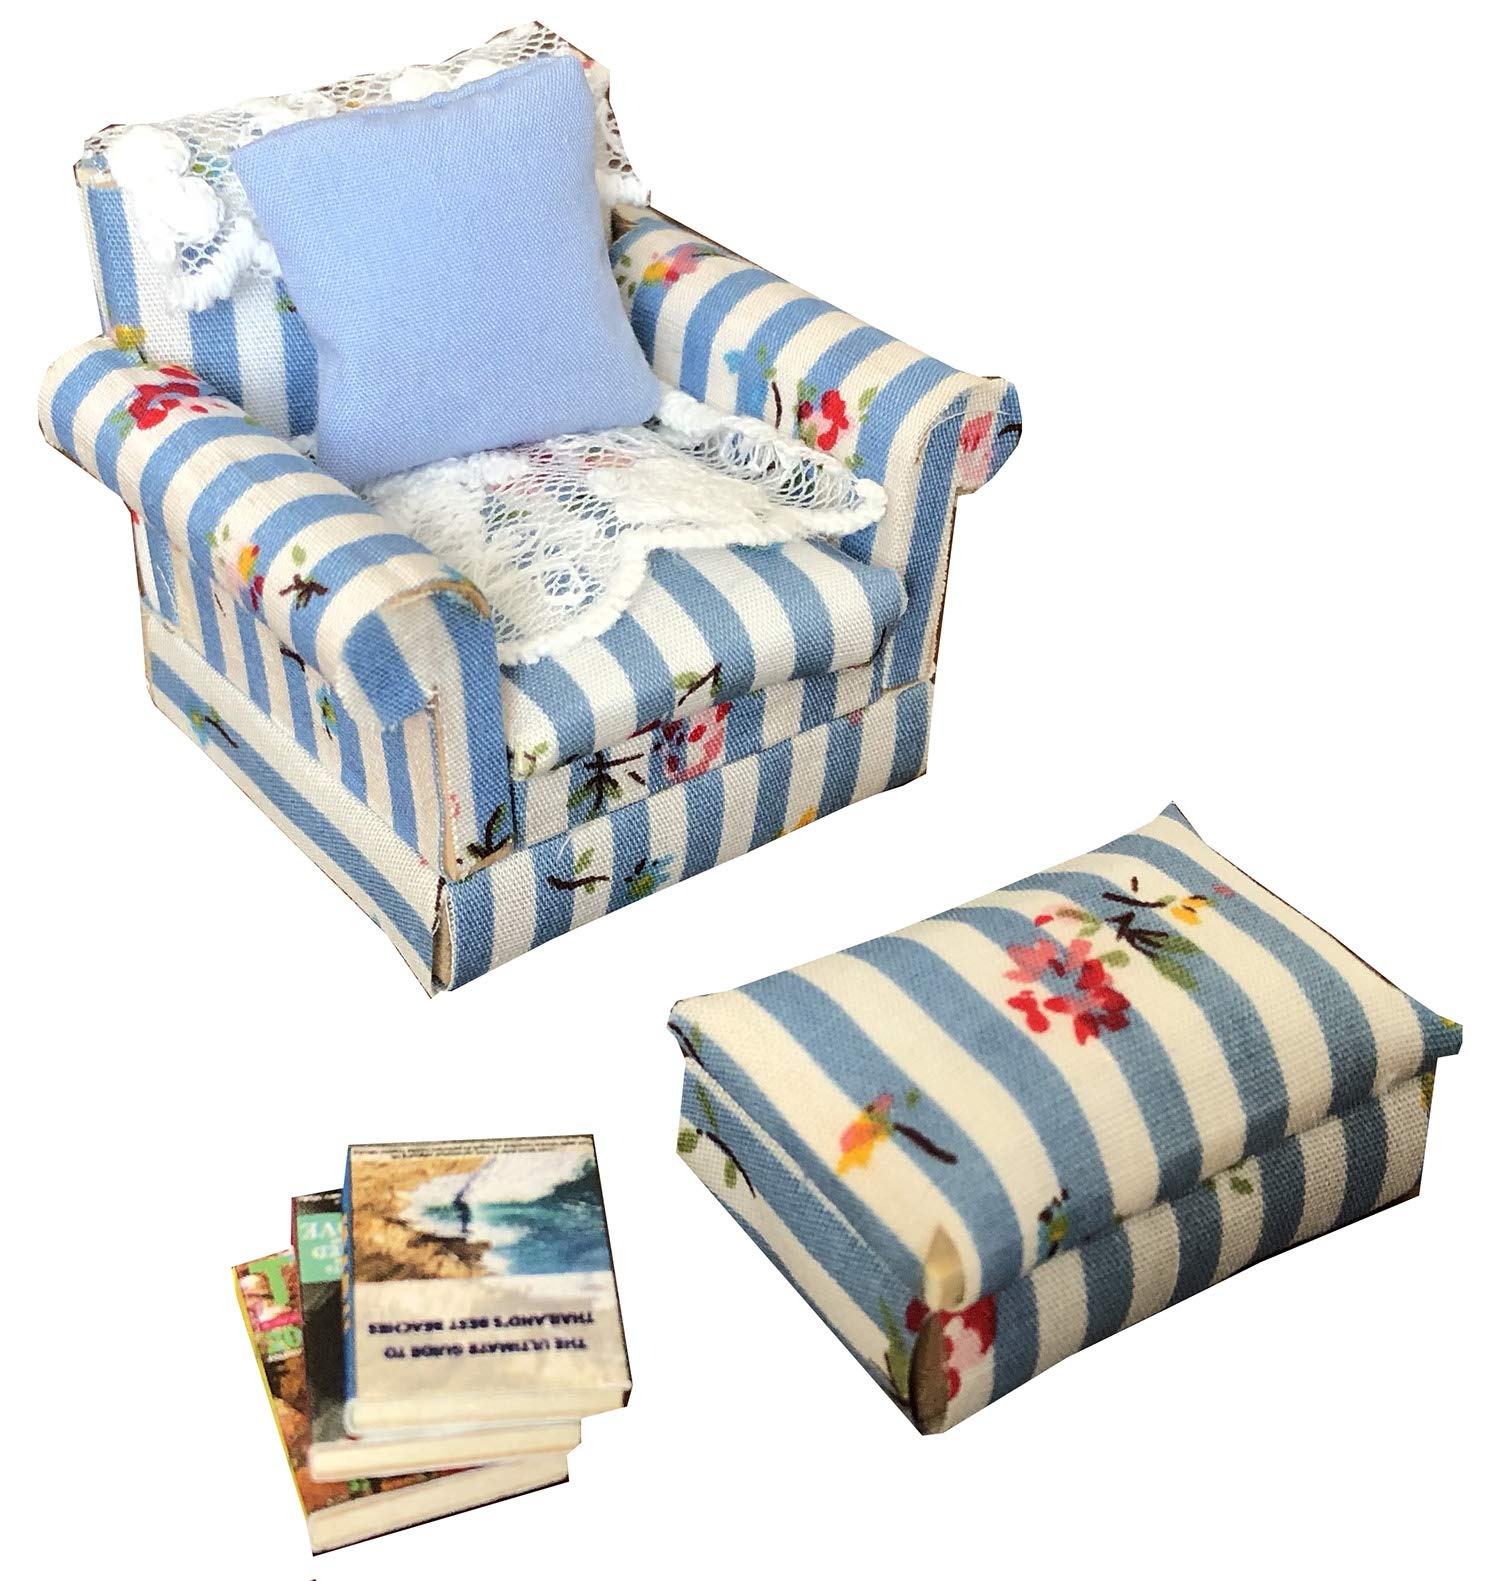 Inusitus Set of Matching Dollhouse Sofa /& Armchair red Check 1//12 Scale Dolls House Furniture Couch /& Chair Red Checkered